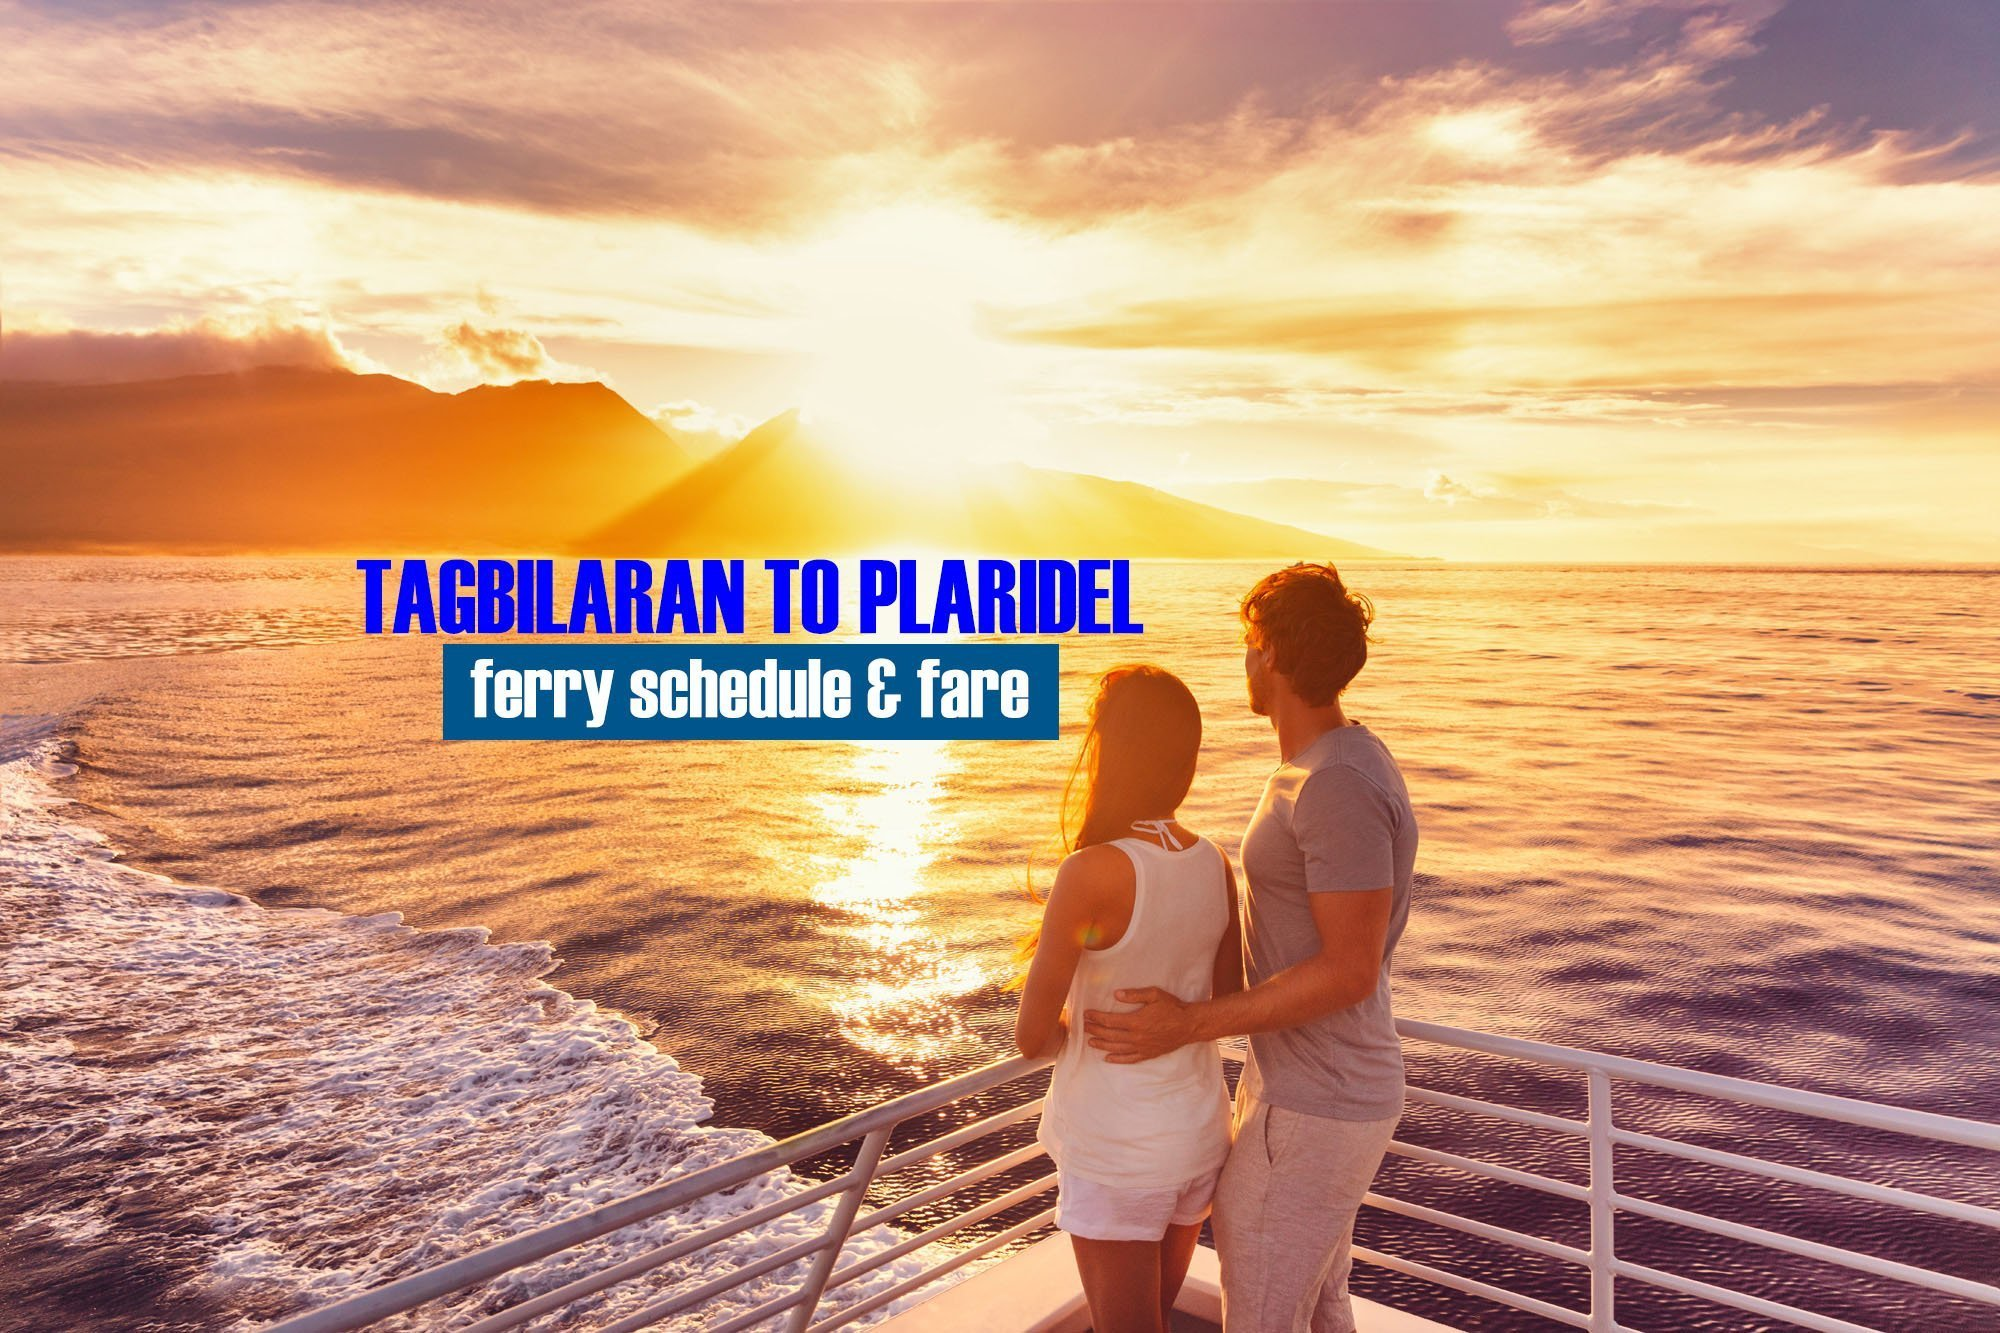 Tagbilaran to Plaridel: 2019 Ferry Schedule and Fare Rates